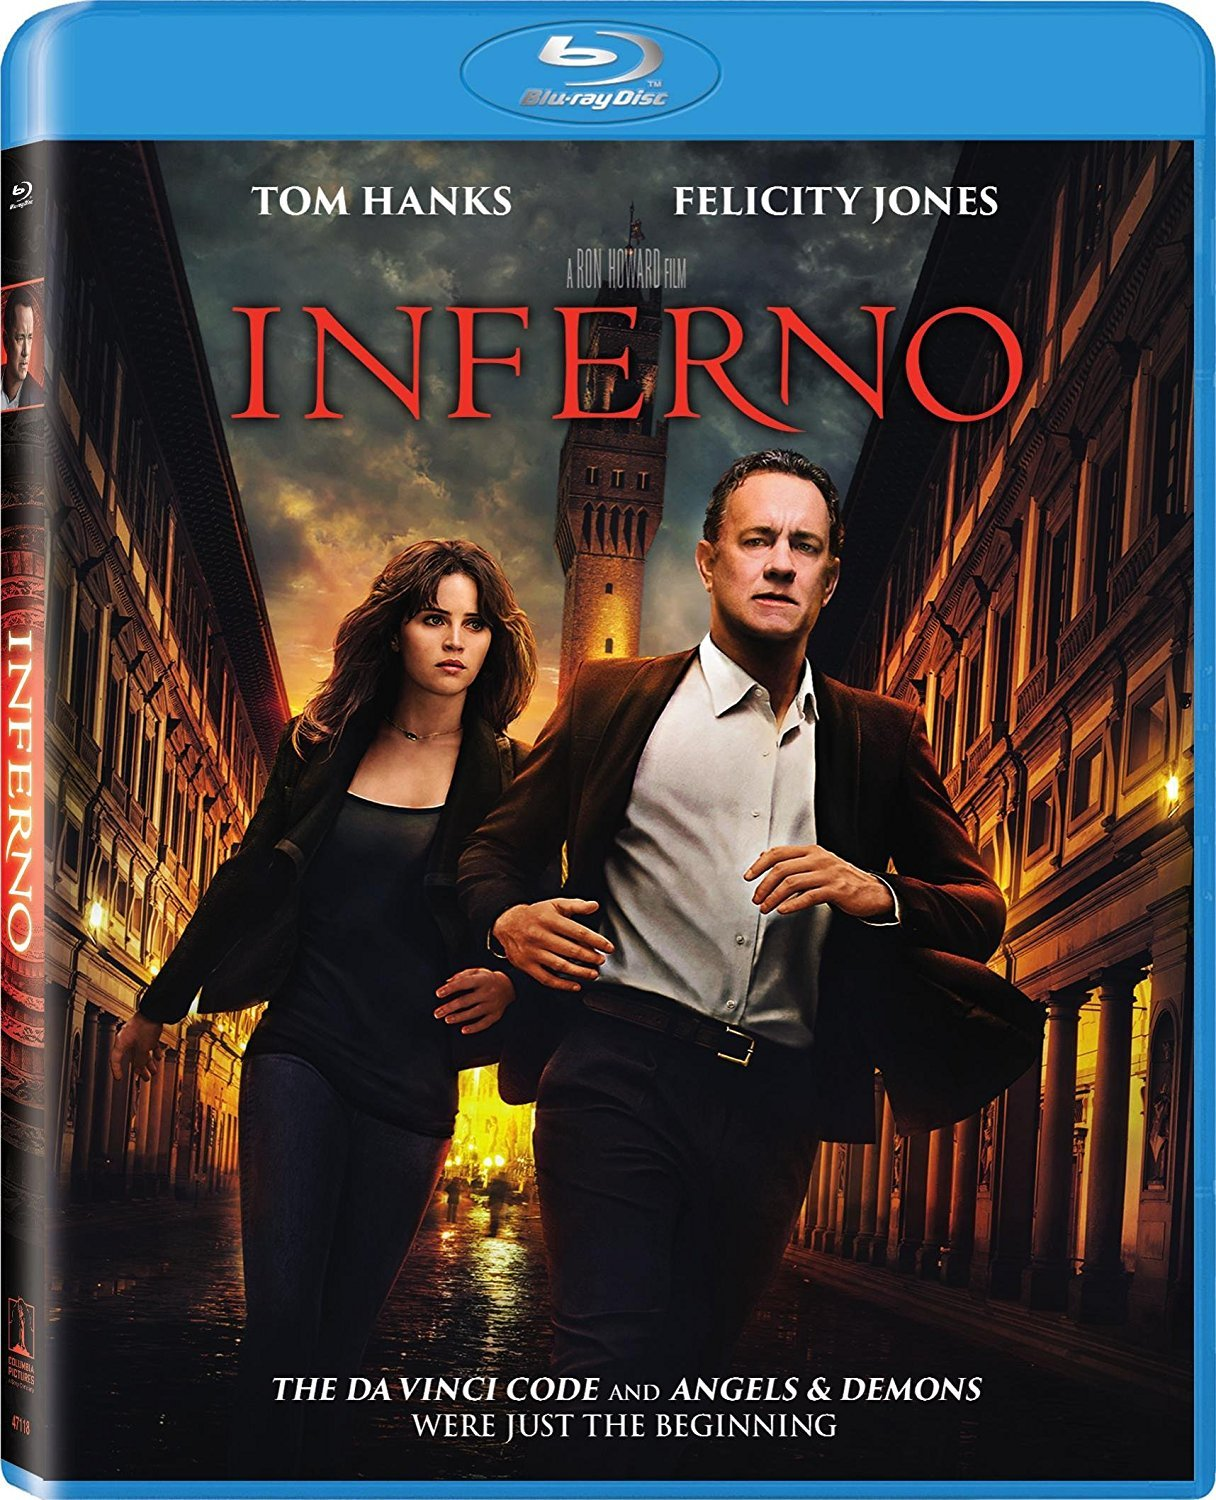 Inferno (2017) [Digital HD with Ultraviolet + Blu-ray]